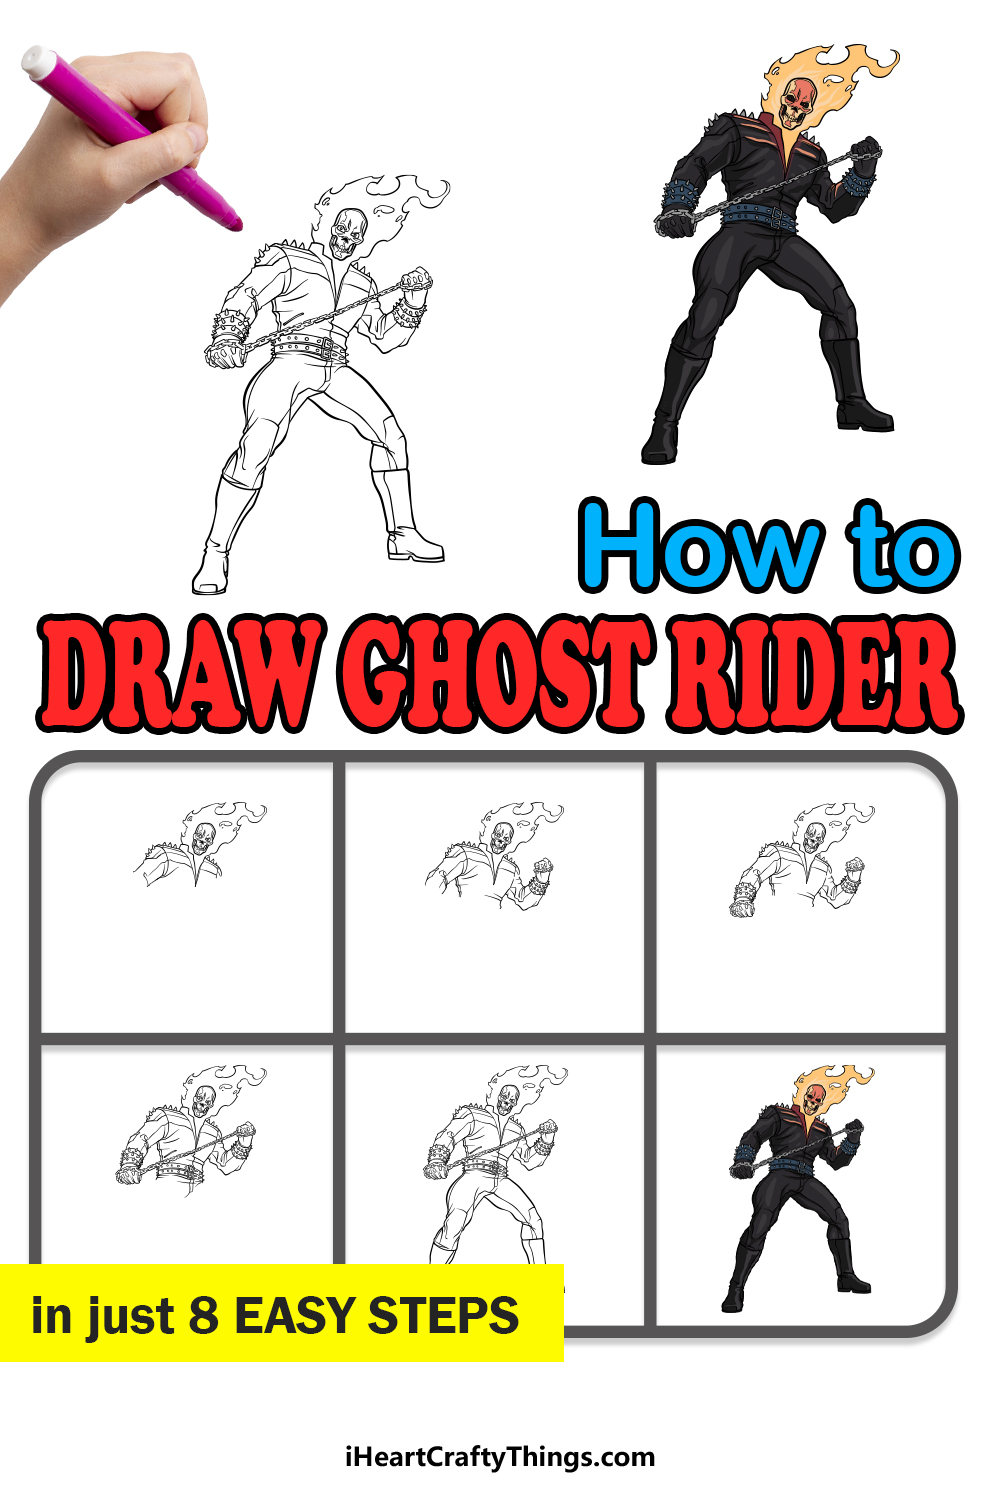 how to draw Ghost Rider in 8 easy steps